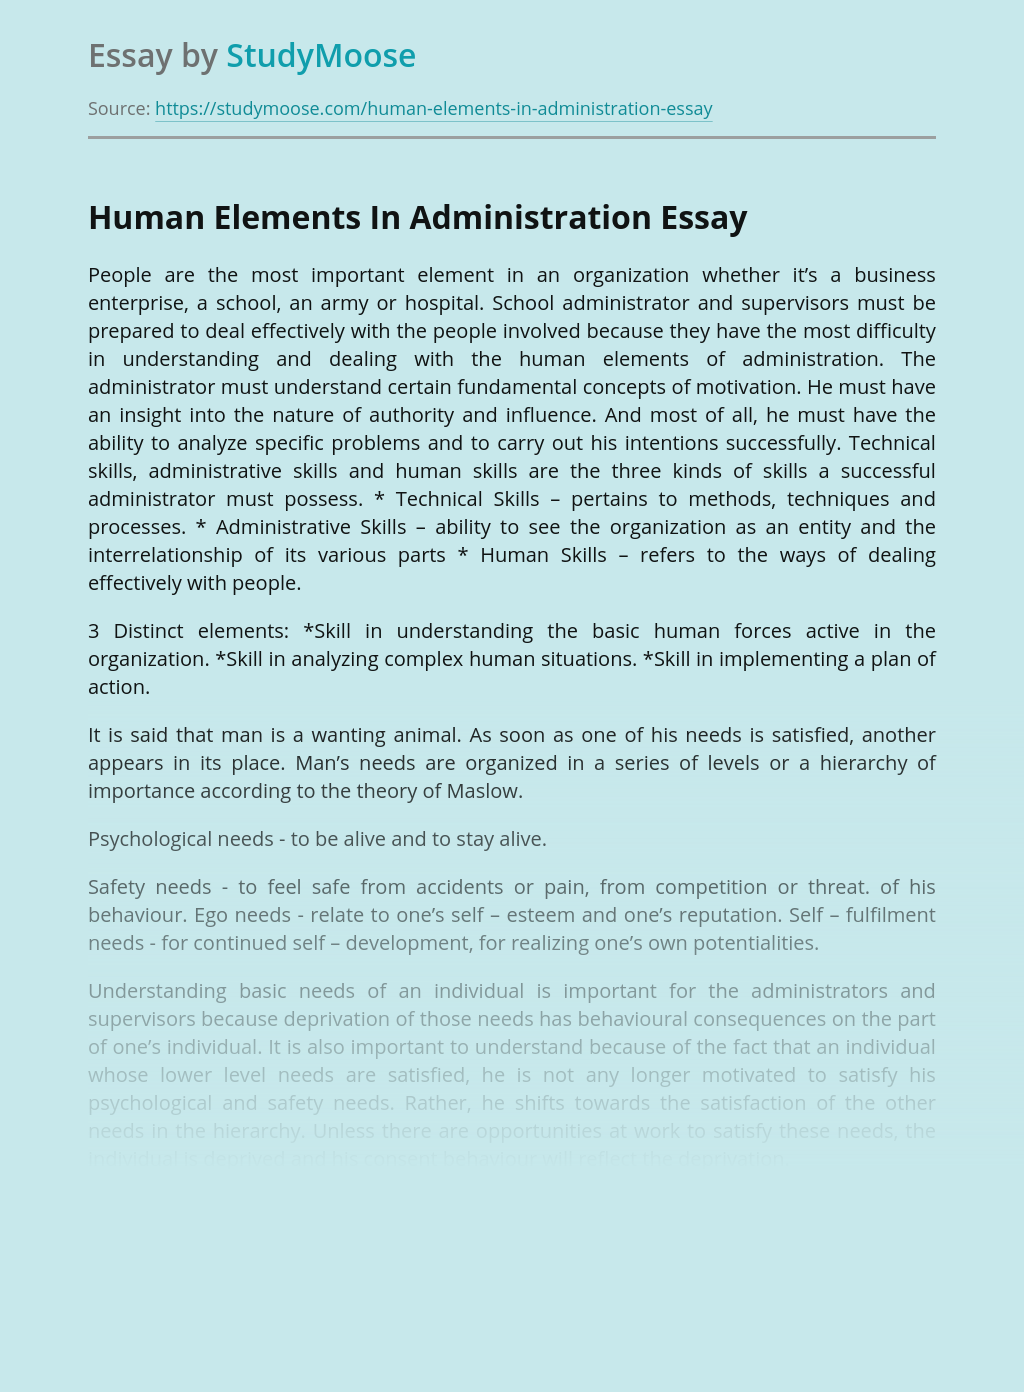 Human Elements In Administration